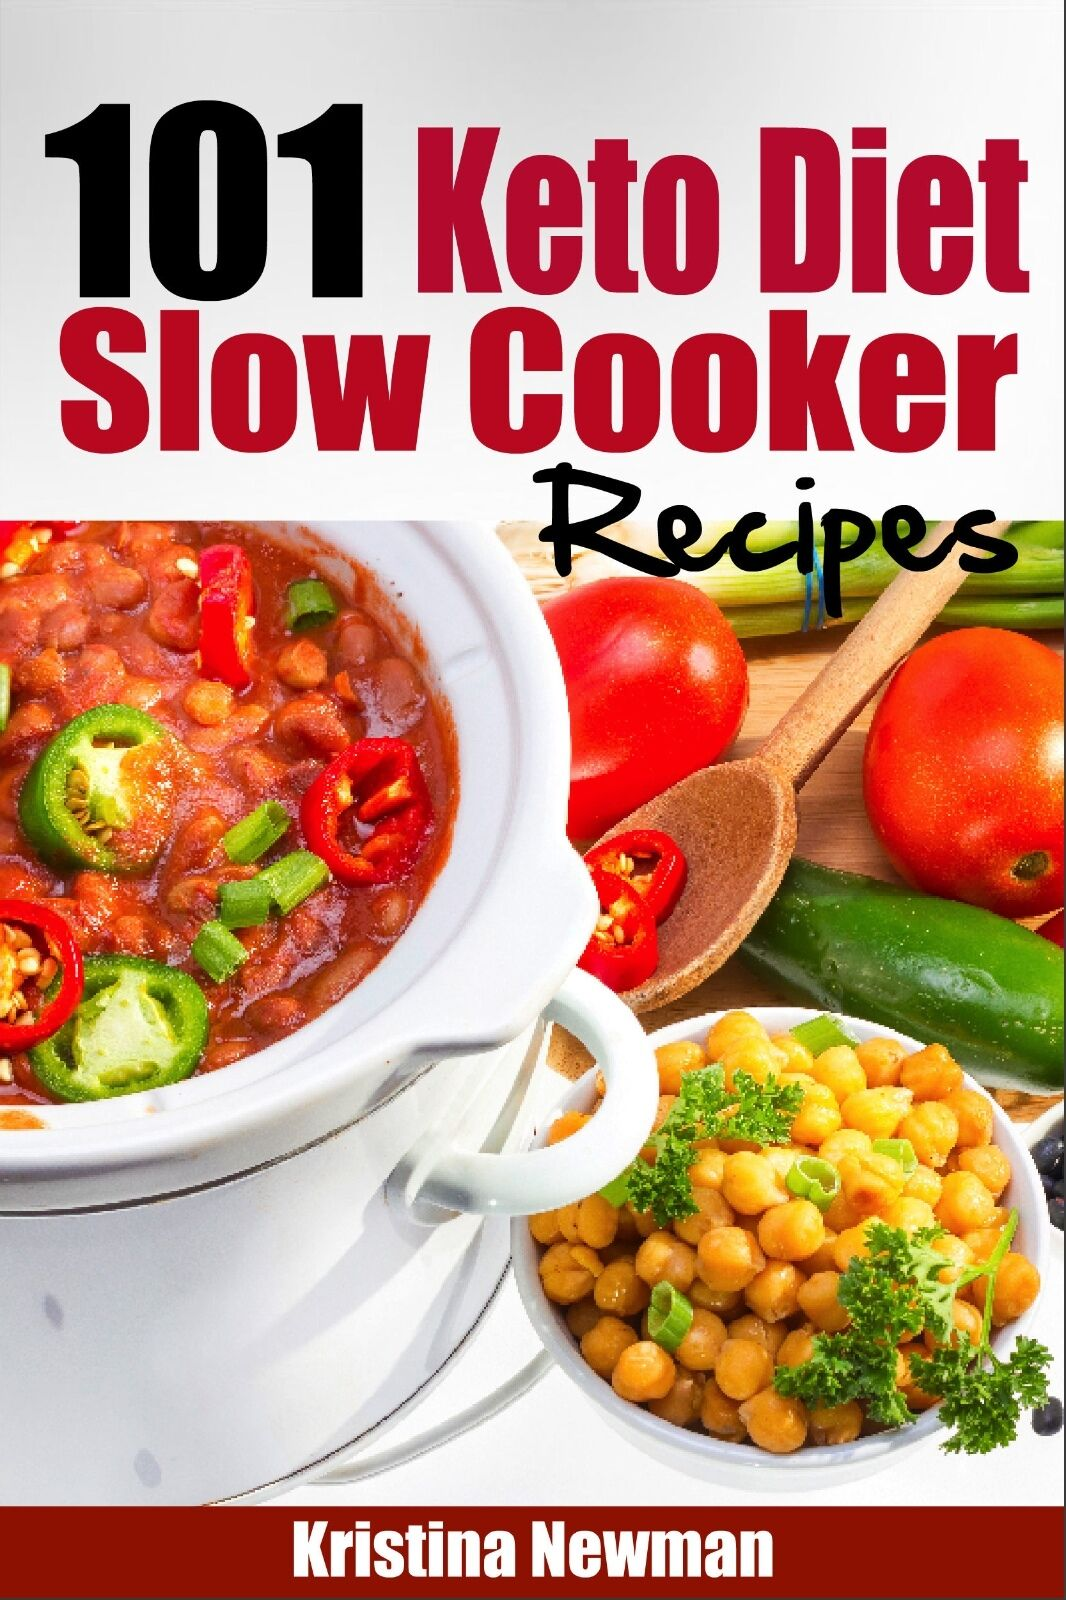 101 Ketogenic Diet Slow Cooker Recipes: Quick & Easy Low ...